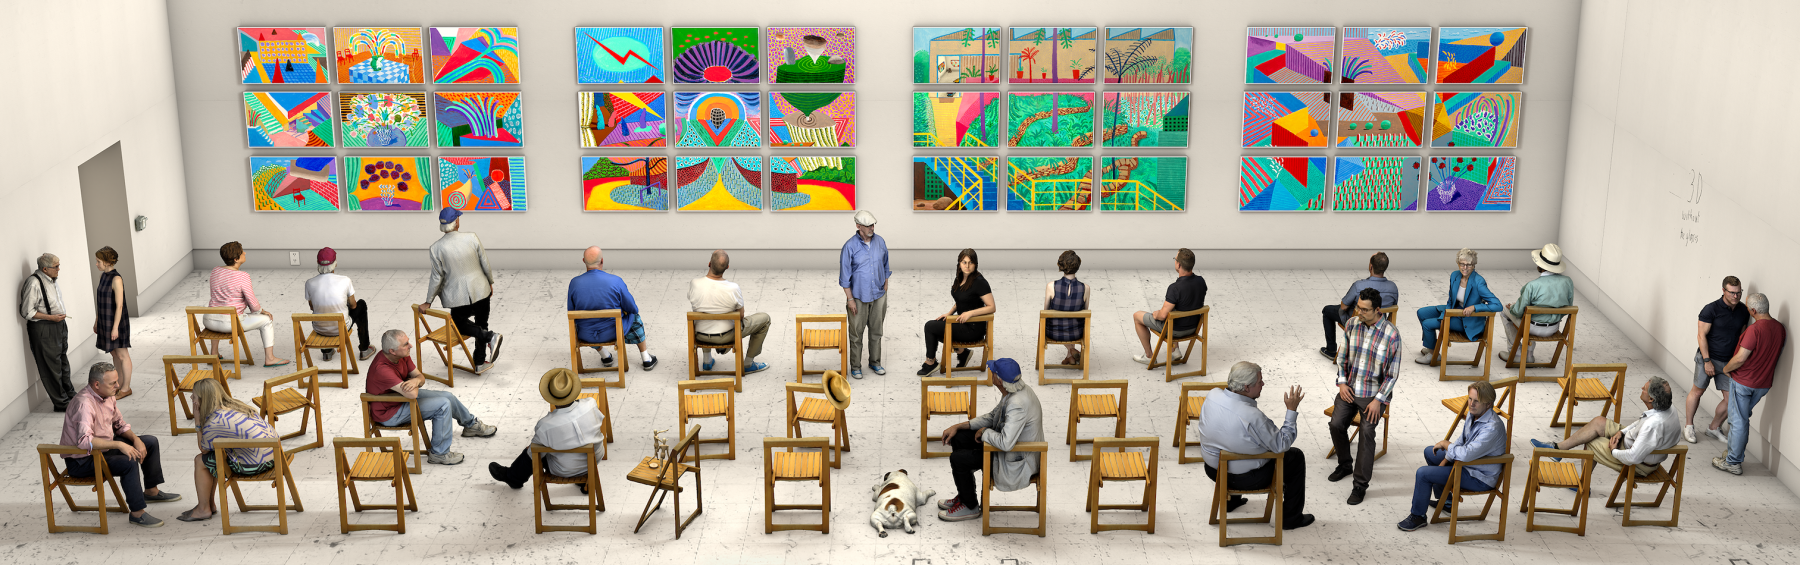 pictures at an exhibition (artwork image)